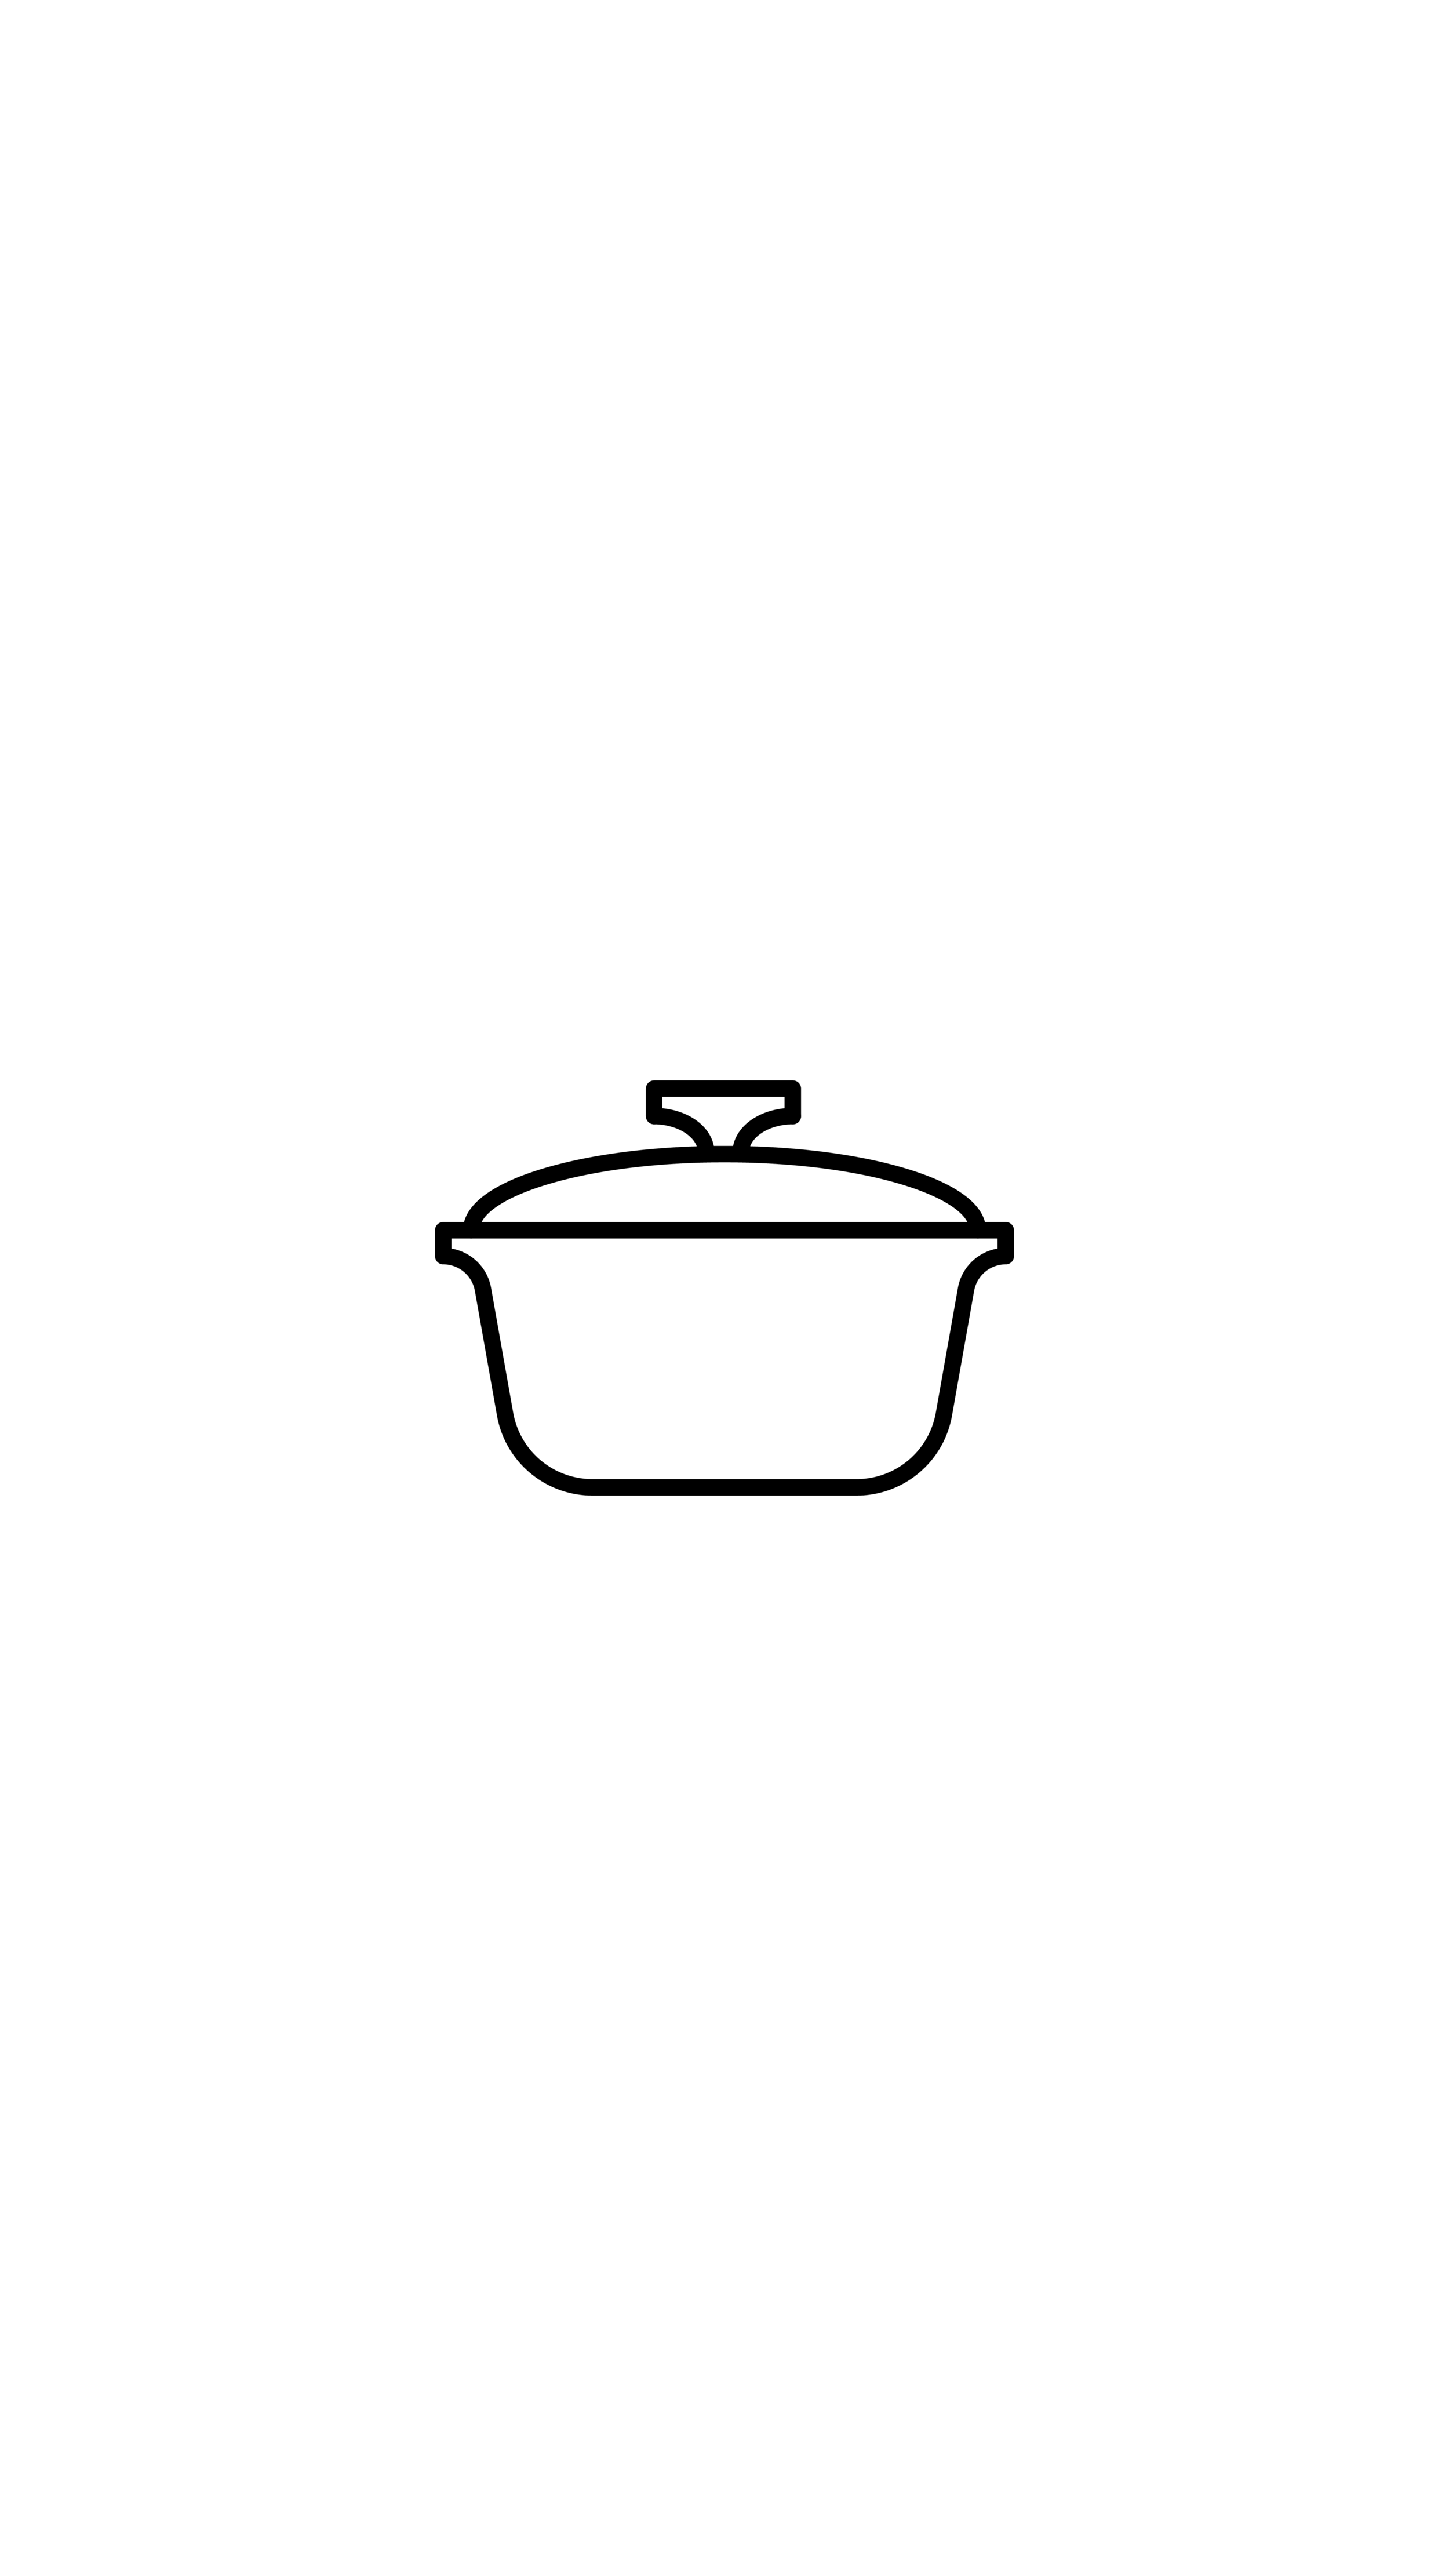 Dutch Oven, Baking, Cooking